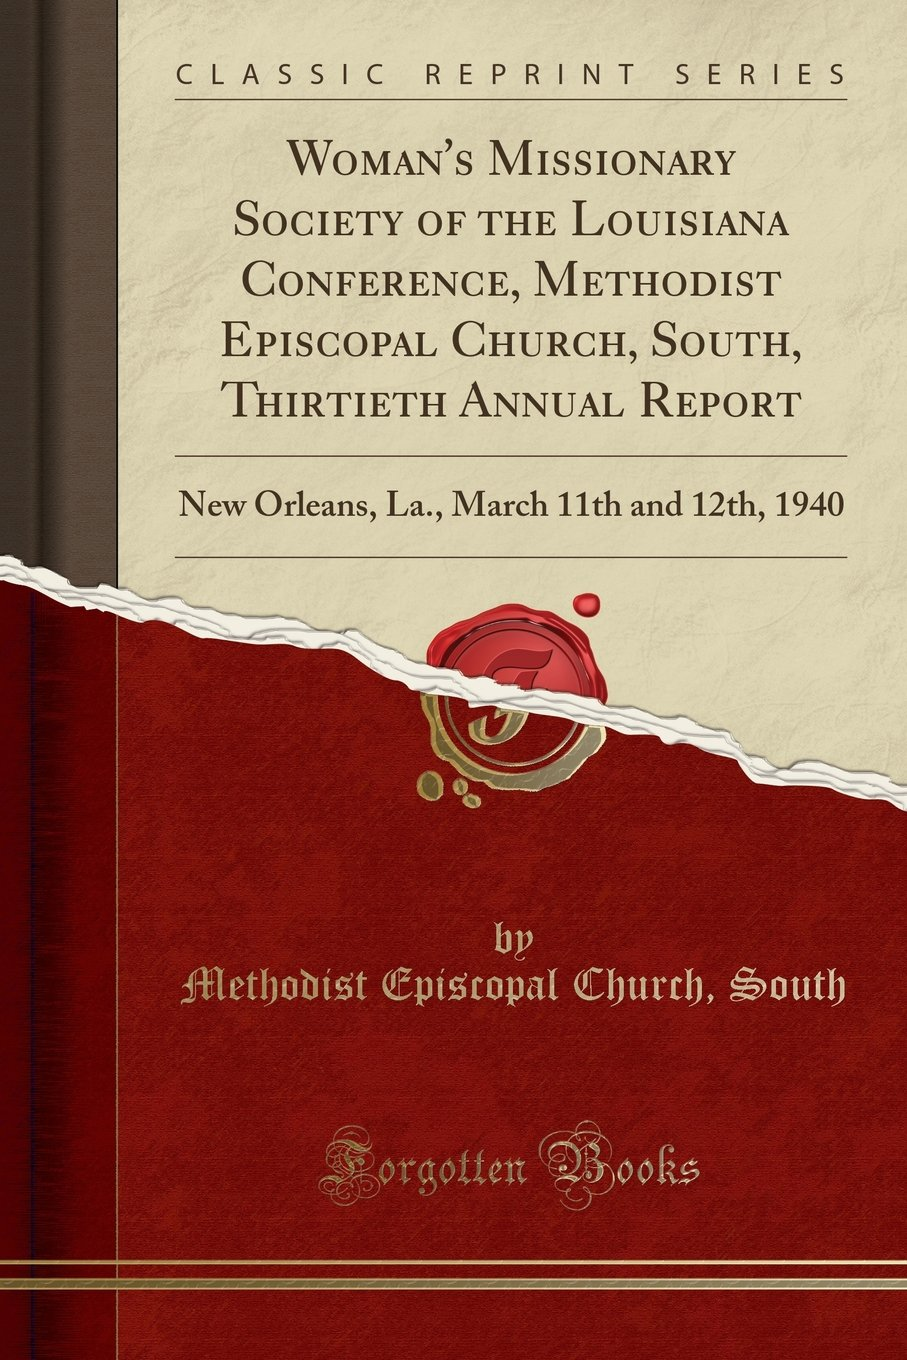 Download Woman's Missionary Society of the Louisiana Conference, Methodist Episcopal Church, South, Thirtieth Annual Report: New Orleans, La., March 11th and 12th, 1940 (Classic Reprint) pdf